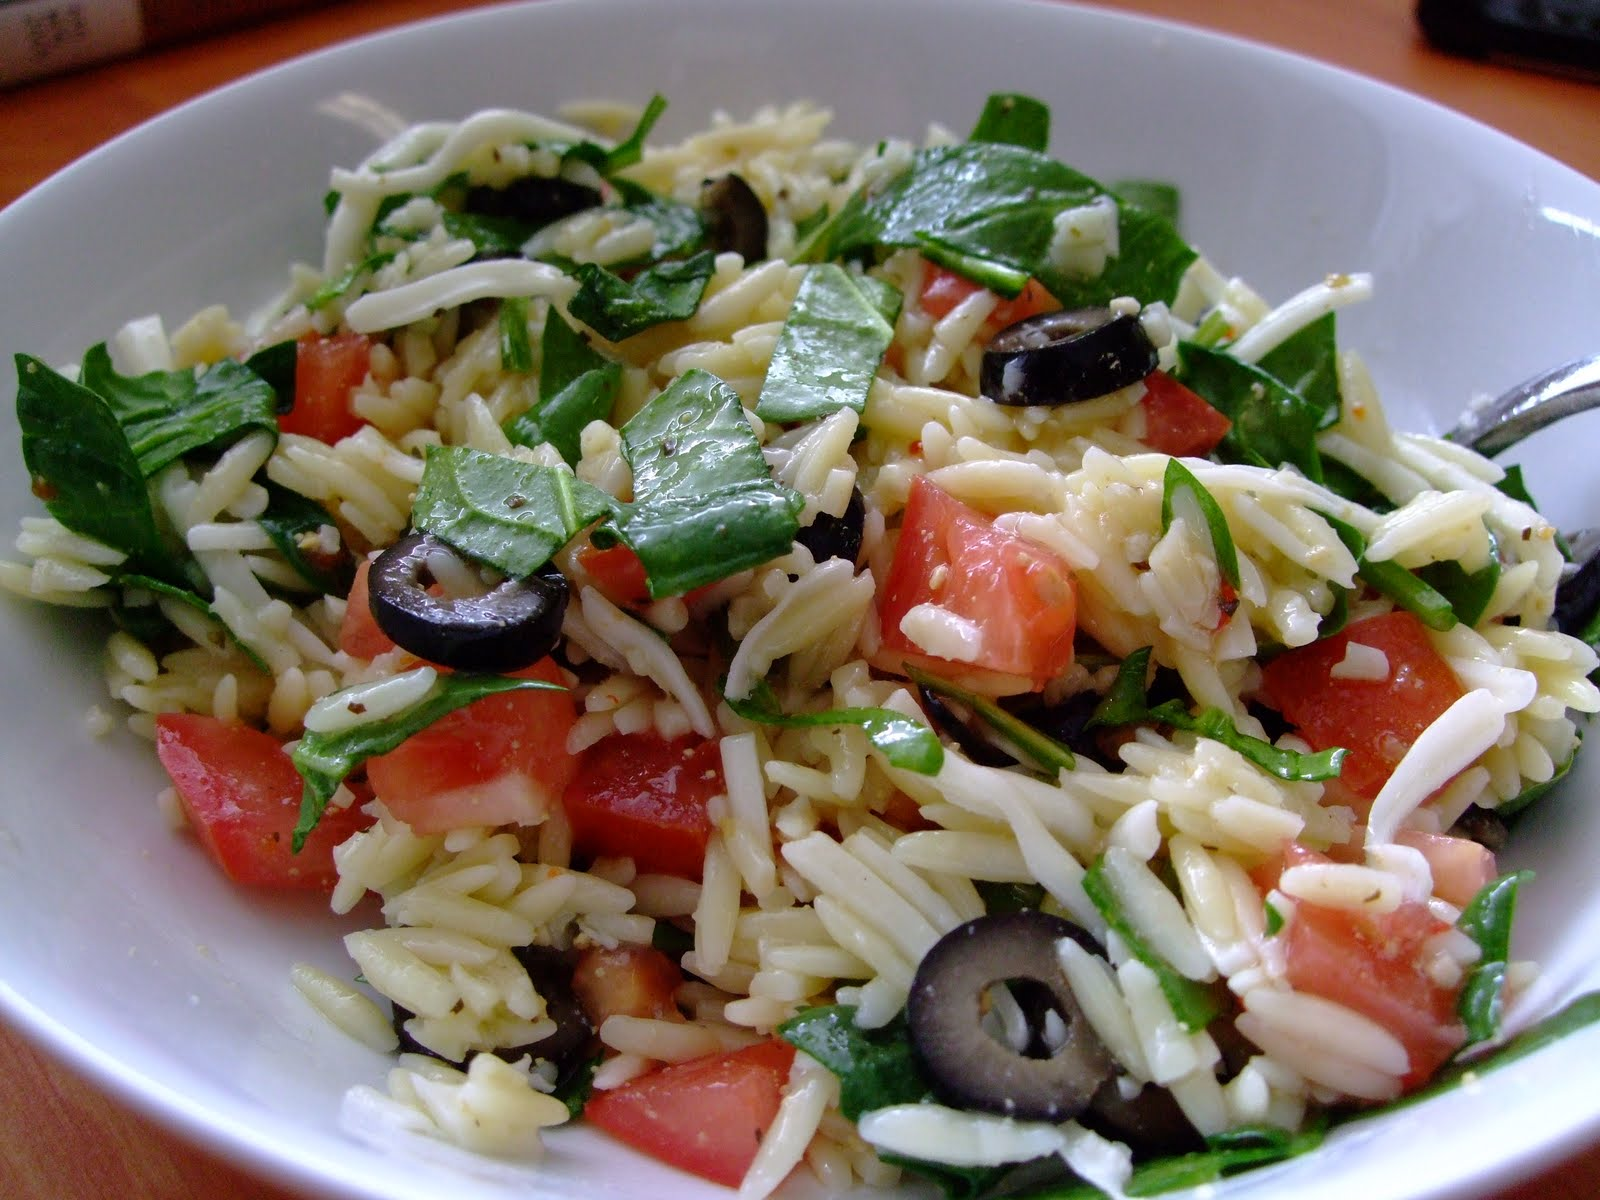 Orzo Salad with Heirloom Tomatoes and Herbs